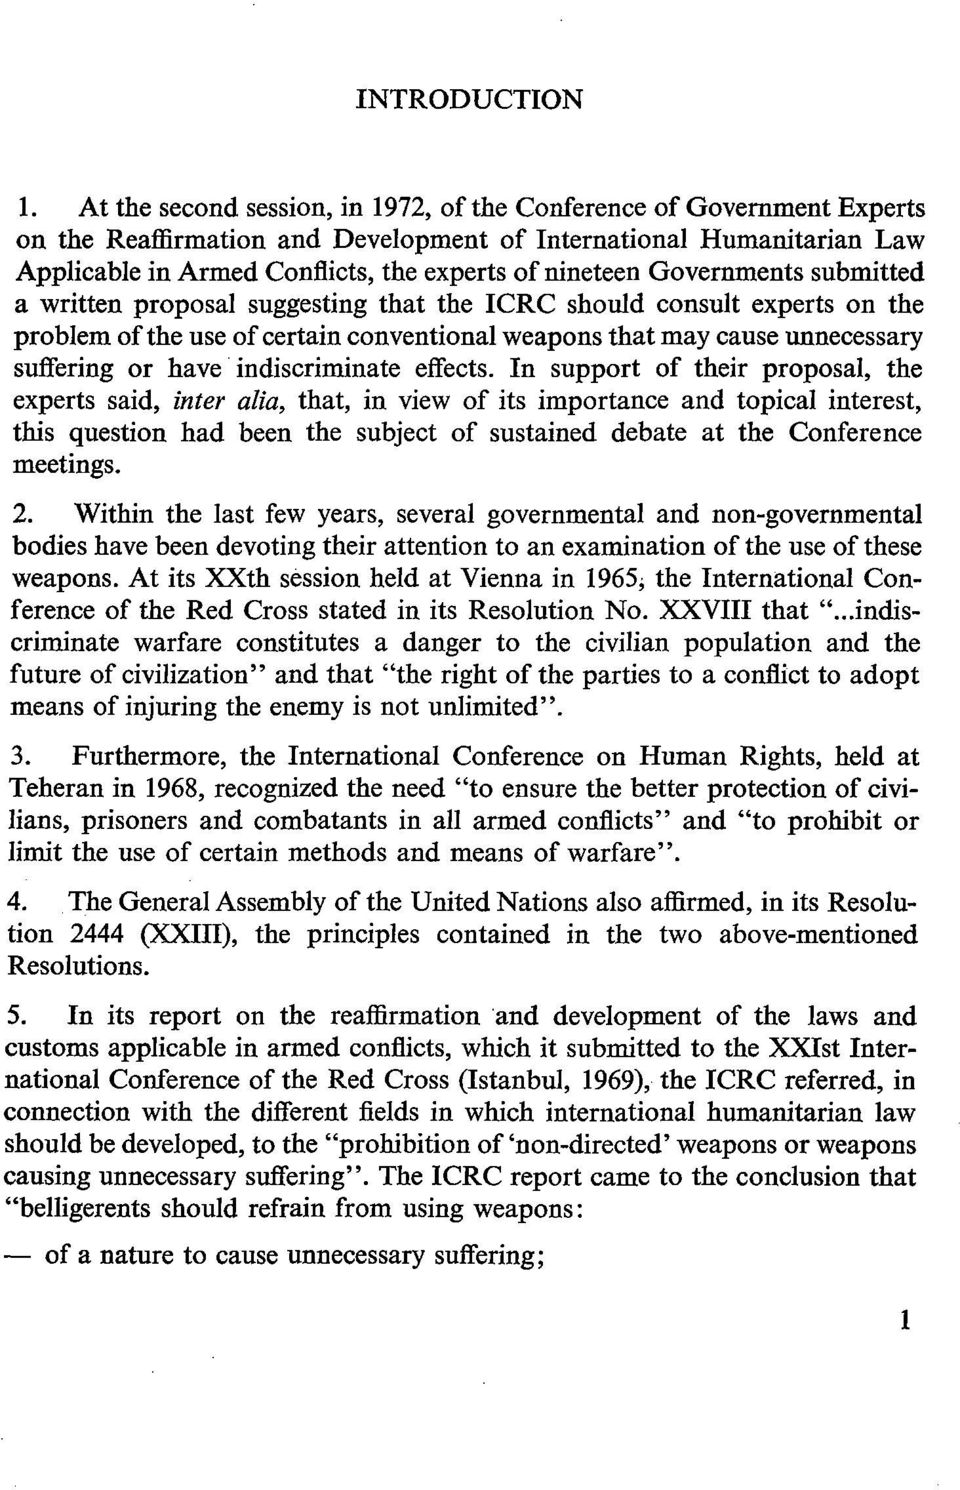 Governments submitted a written proposal suggesting that the ICRC should consult experts on the problem ofthe use ofcertain conventional weapons that may cause unnecessary suffering or have